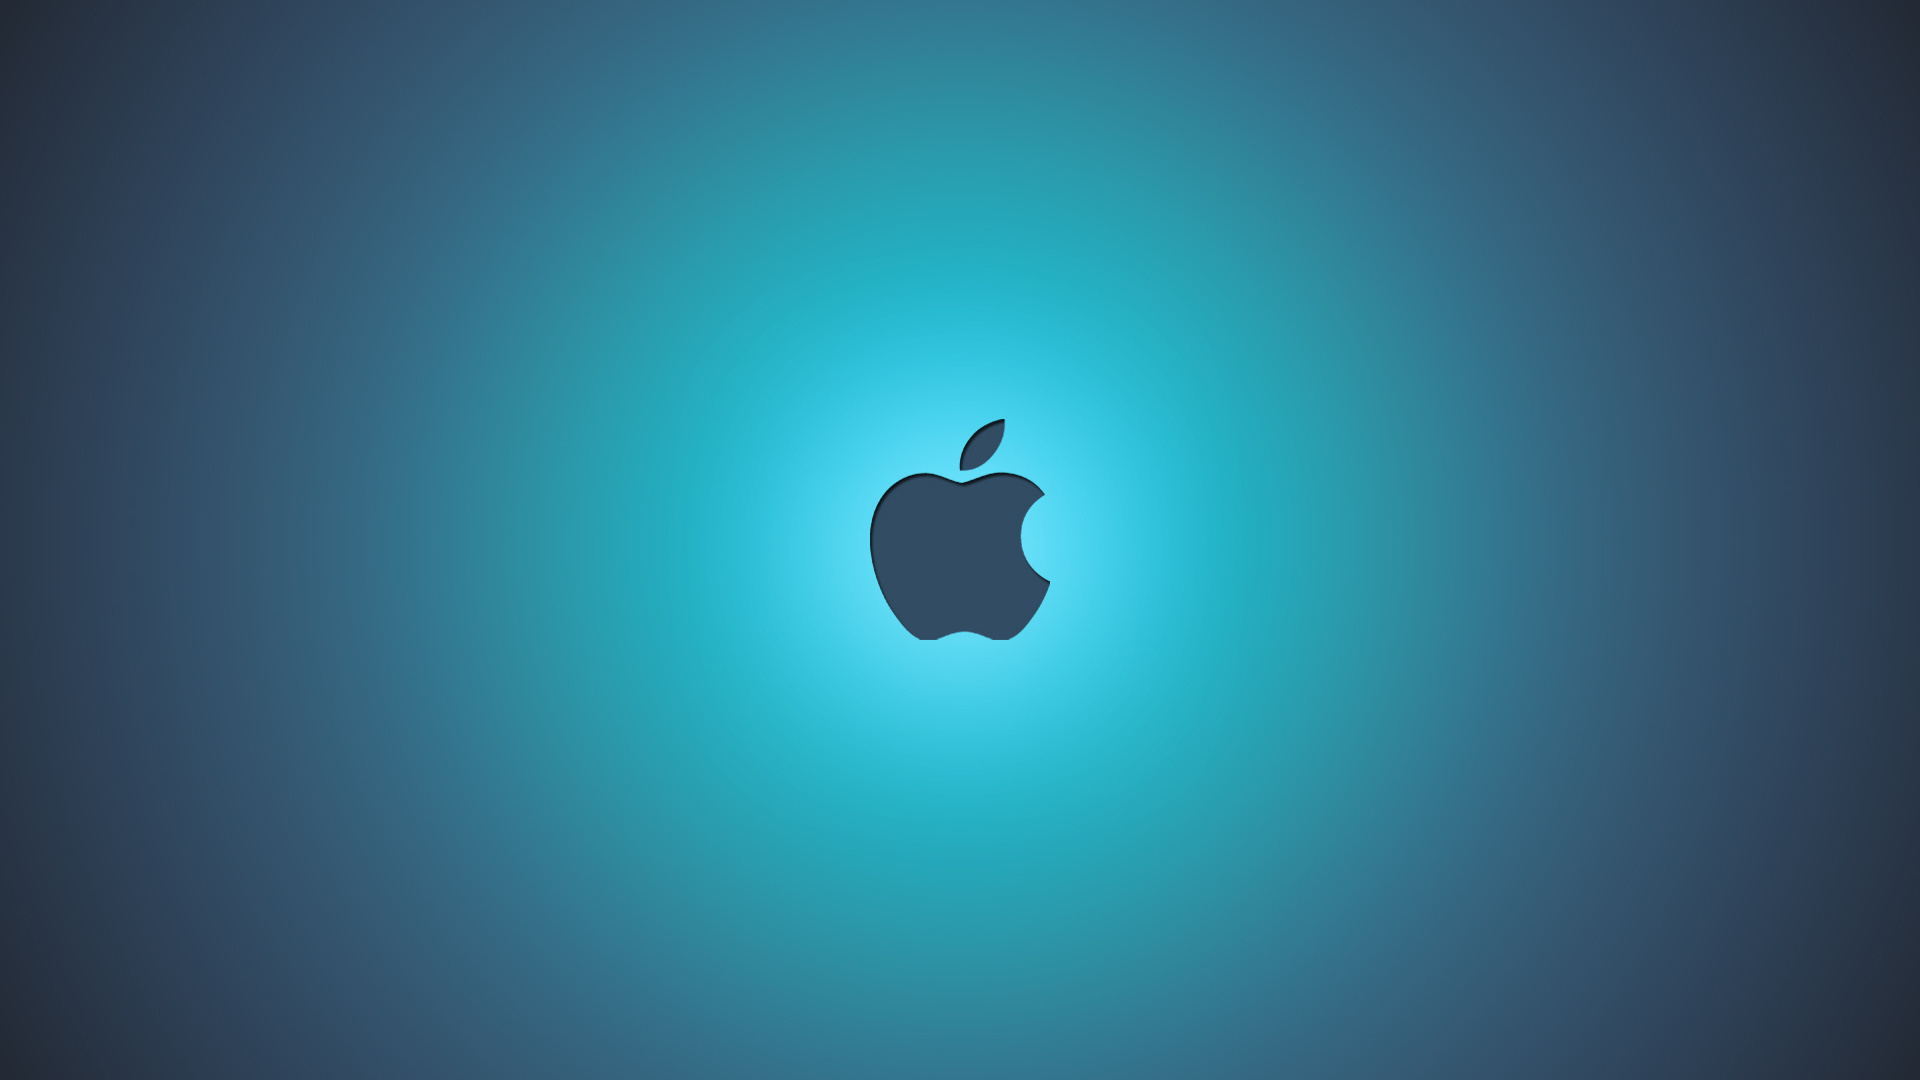 Apple-Blue-Background-Desktop-High-wallpaper-wp3402541